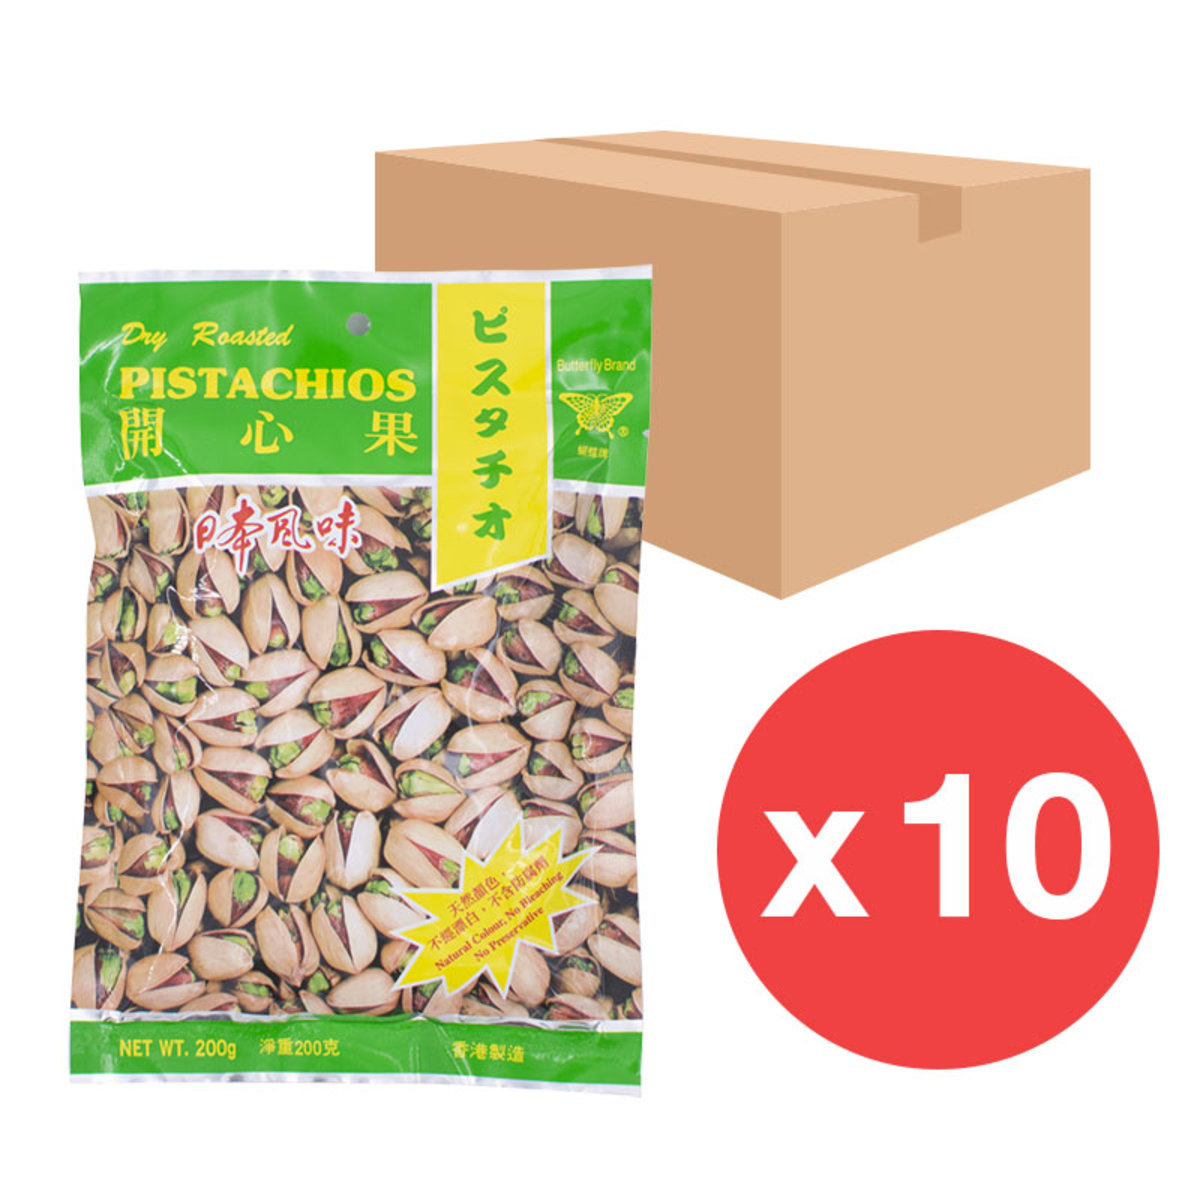 [Full case 10 bags] Dry Roasted Pistachios